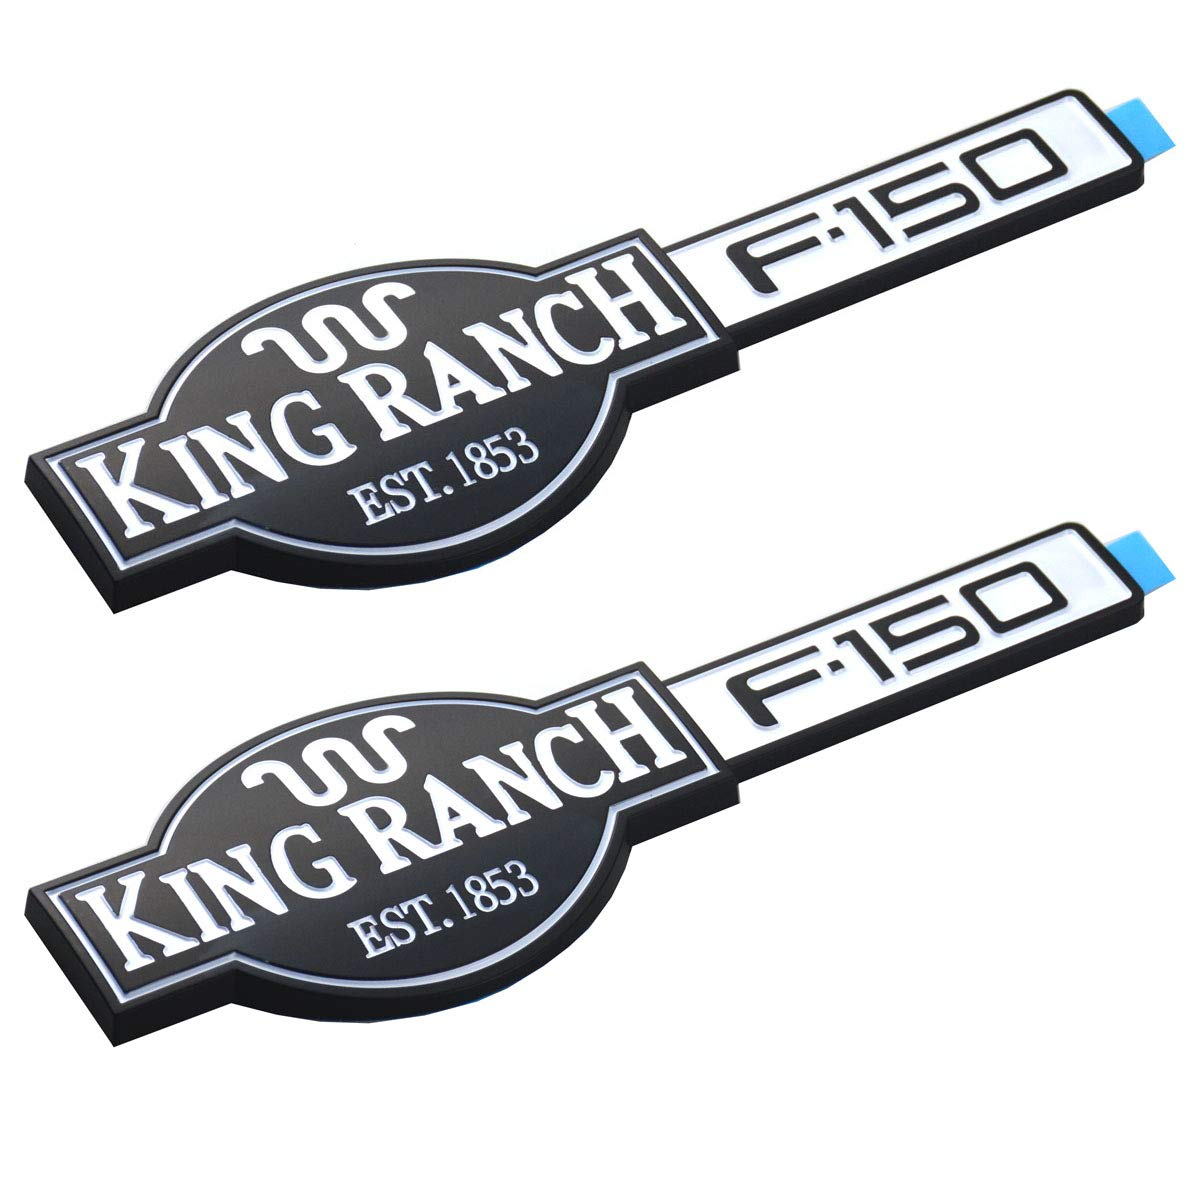 Two Pcs King Ranch F150 3D Adhesive Emblems Badges Door Tailgate Compatible with F-150 Chrome